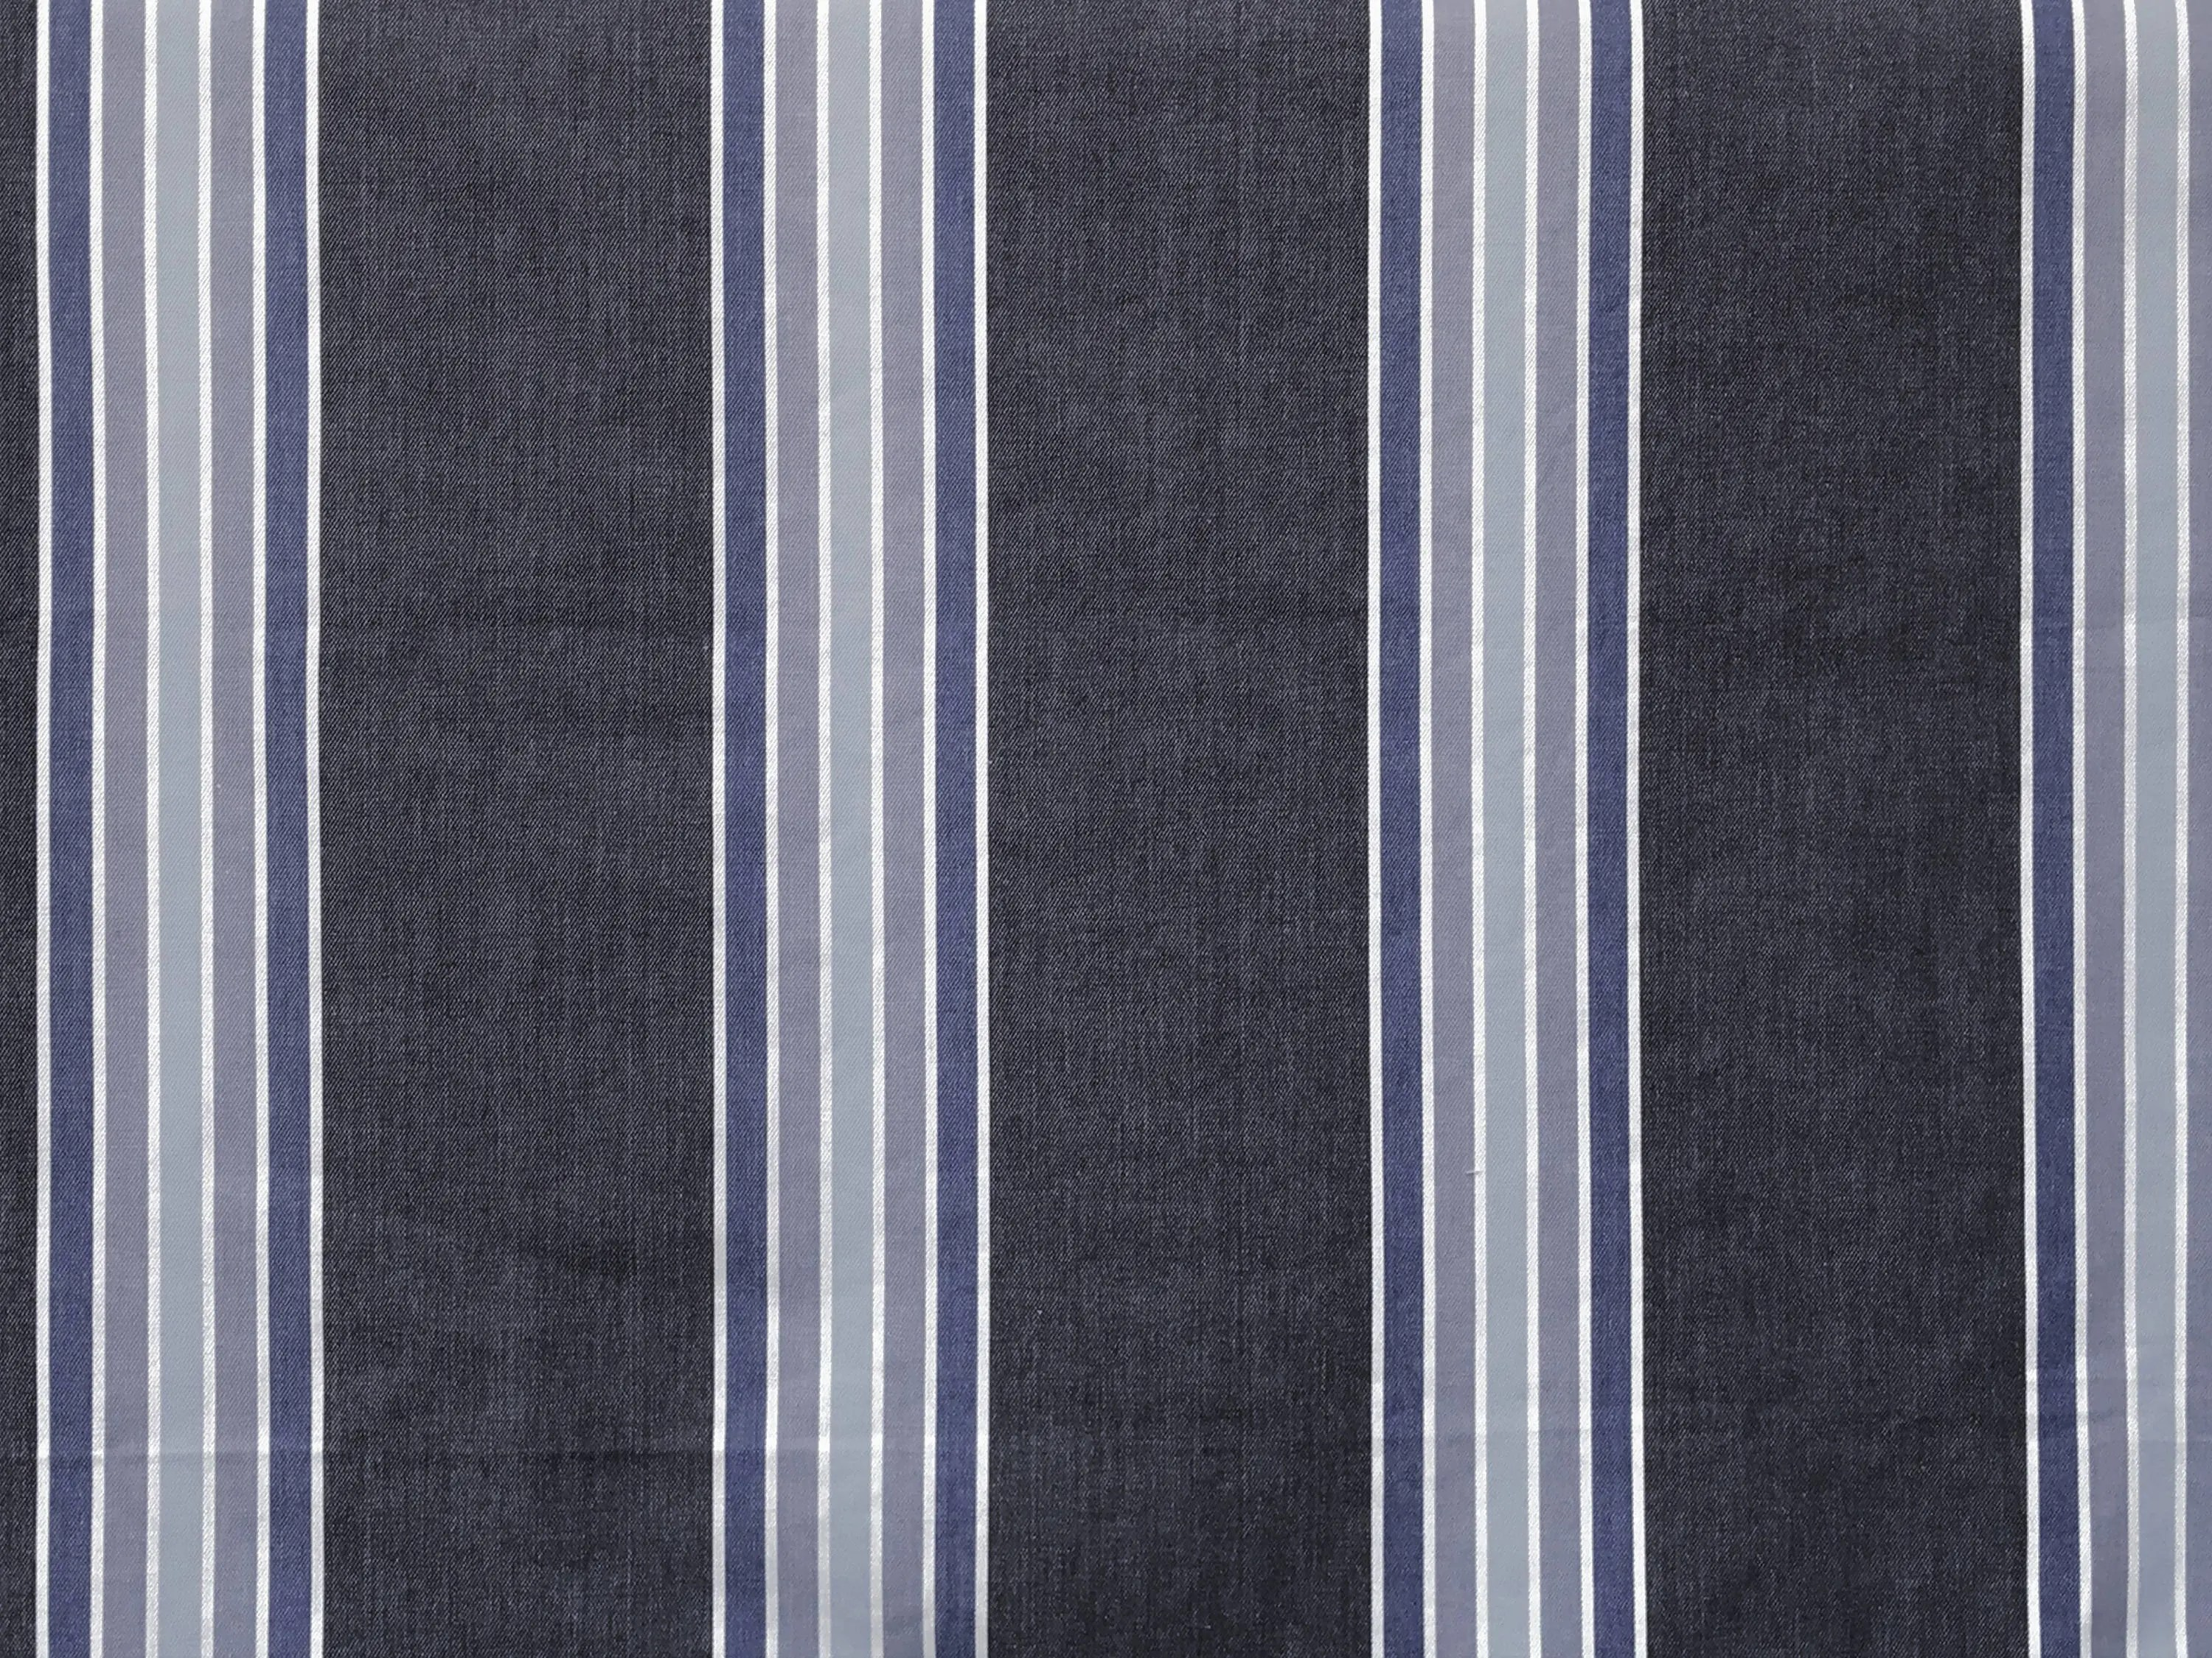 Curtain Fabric Wholesale Shades Of Blue Stripes Curtain Fabric By The Yard Upholstery Fabric Wholesale Drapery Fabric Yardage Window Treatment Sofa Fabric For Sale